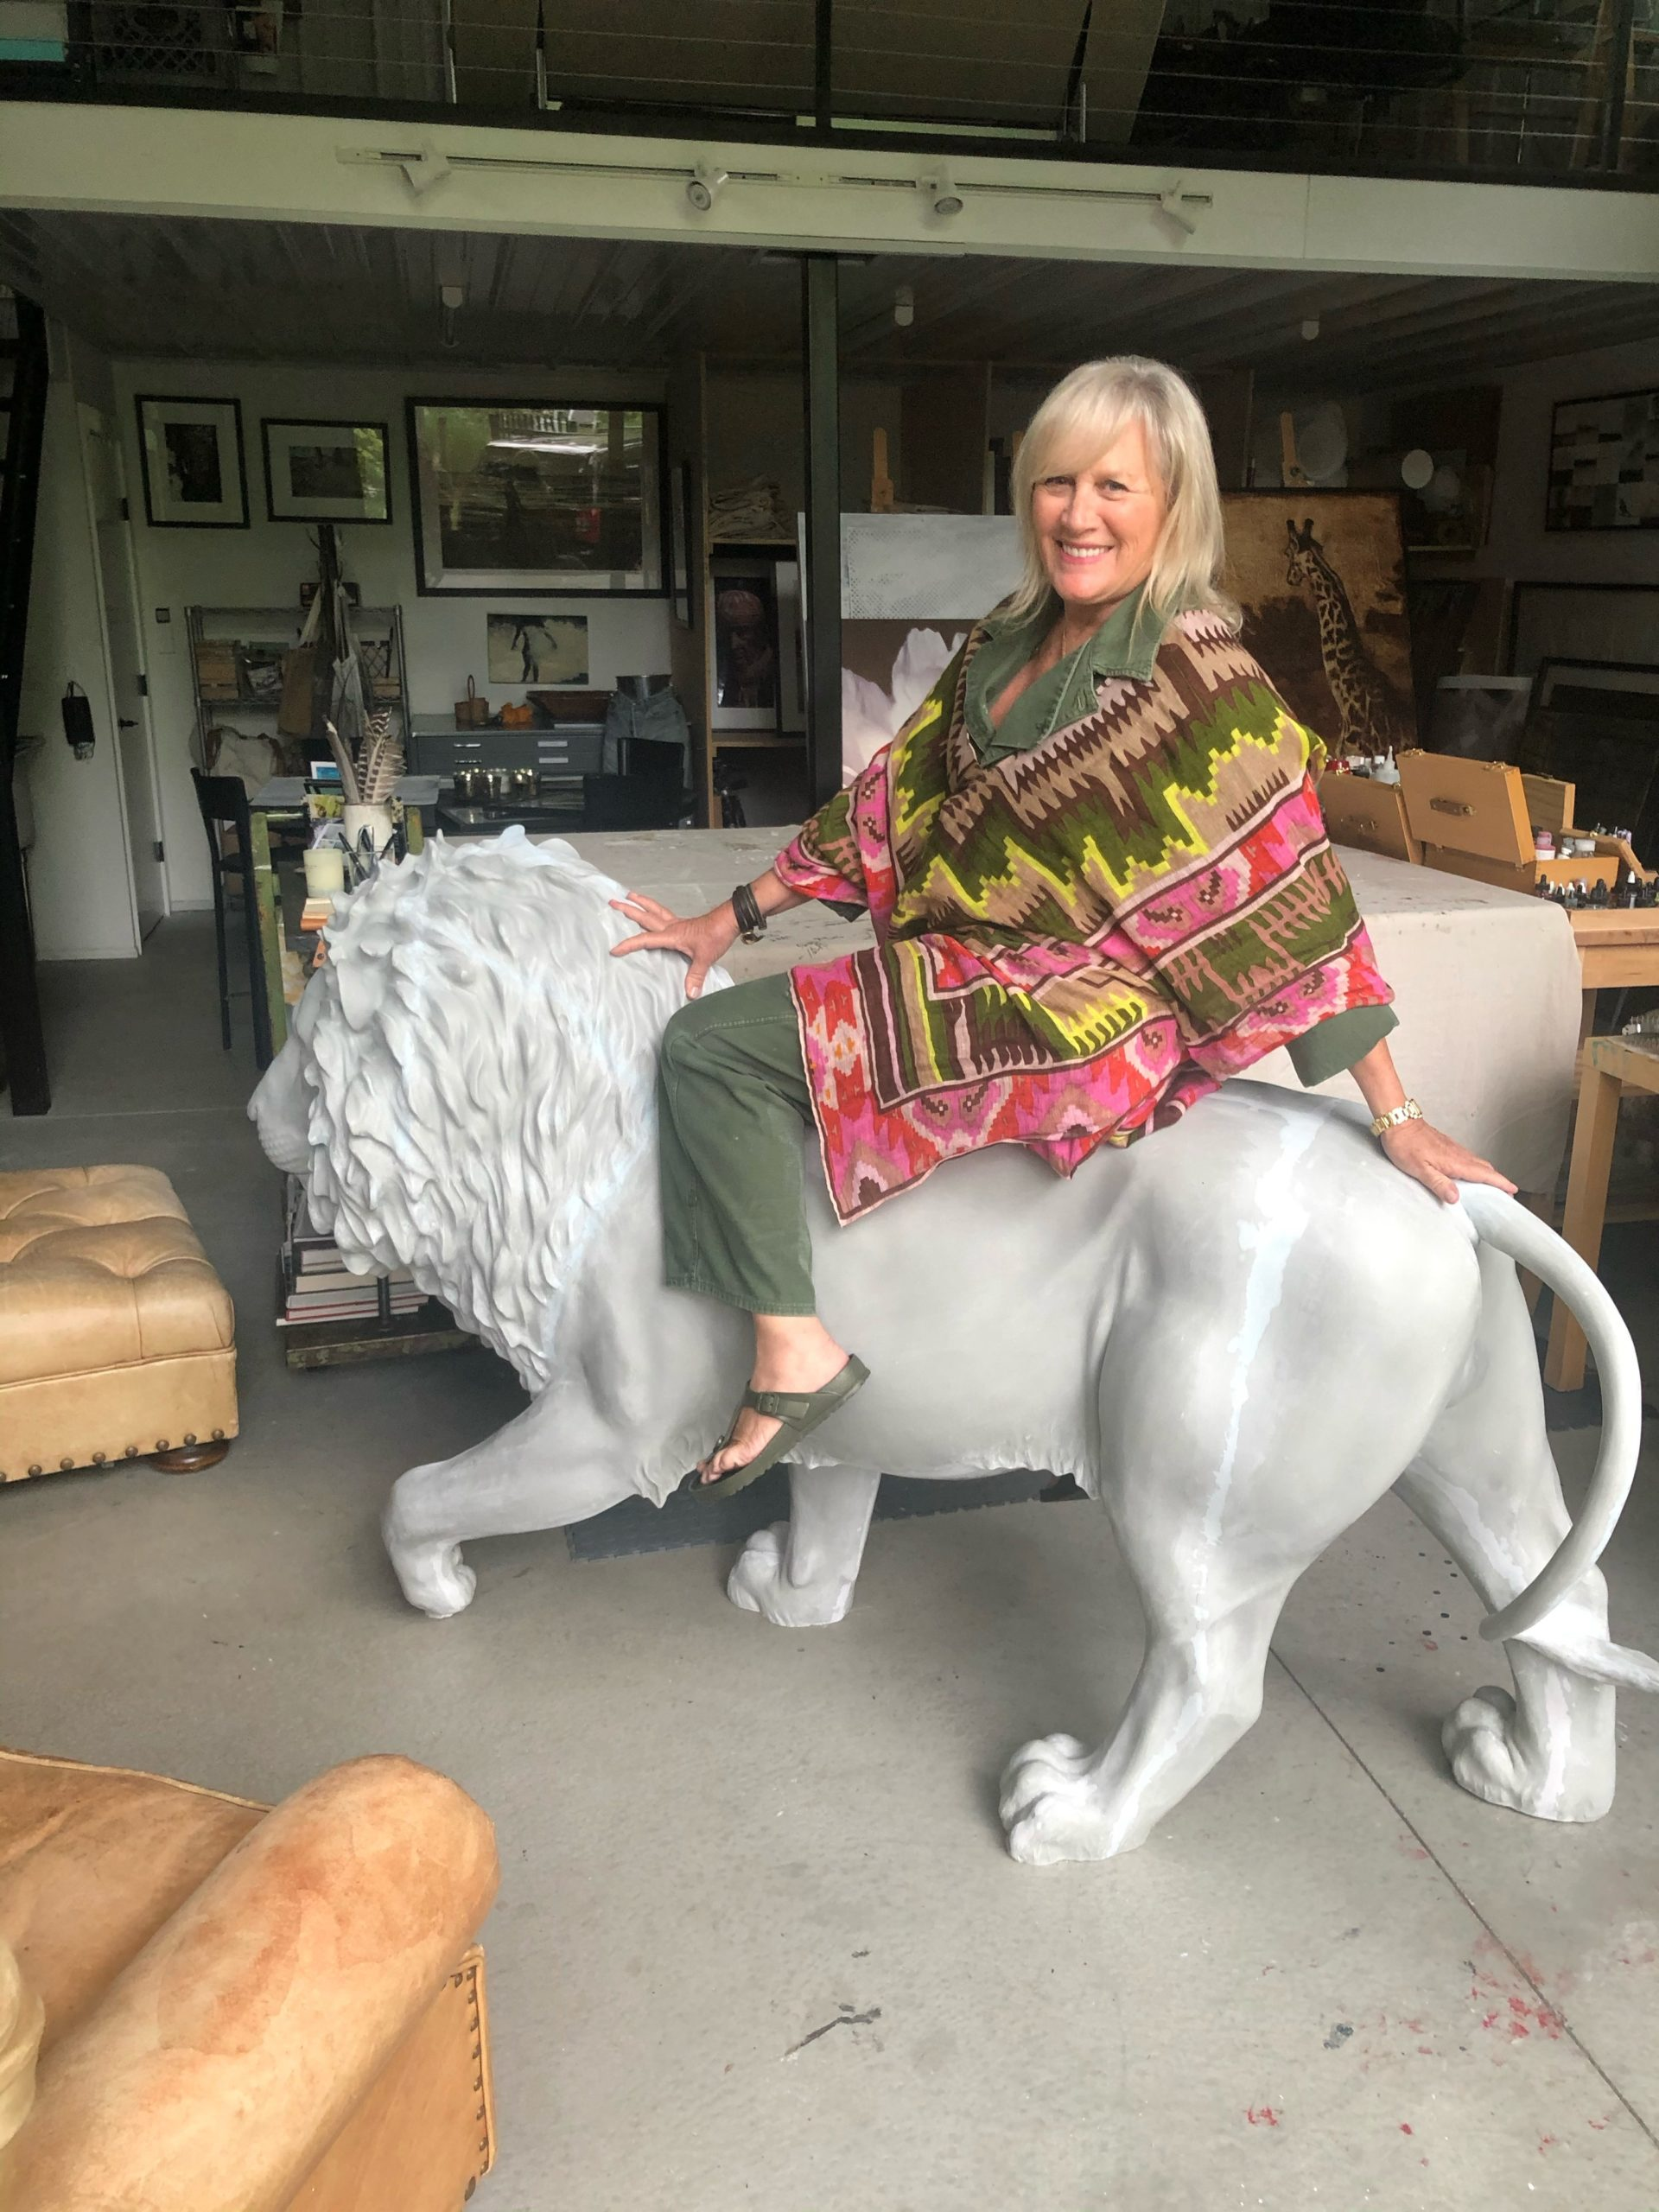 Beth O'Donnell atop her lion sculpture.